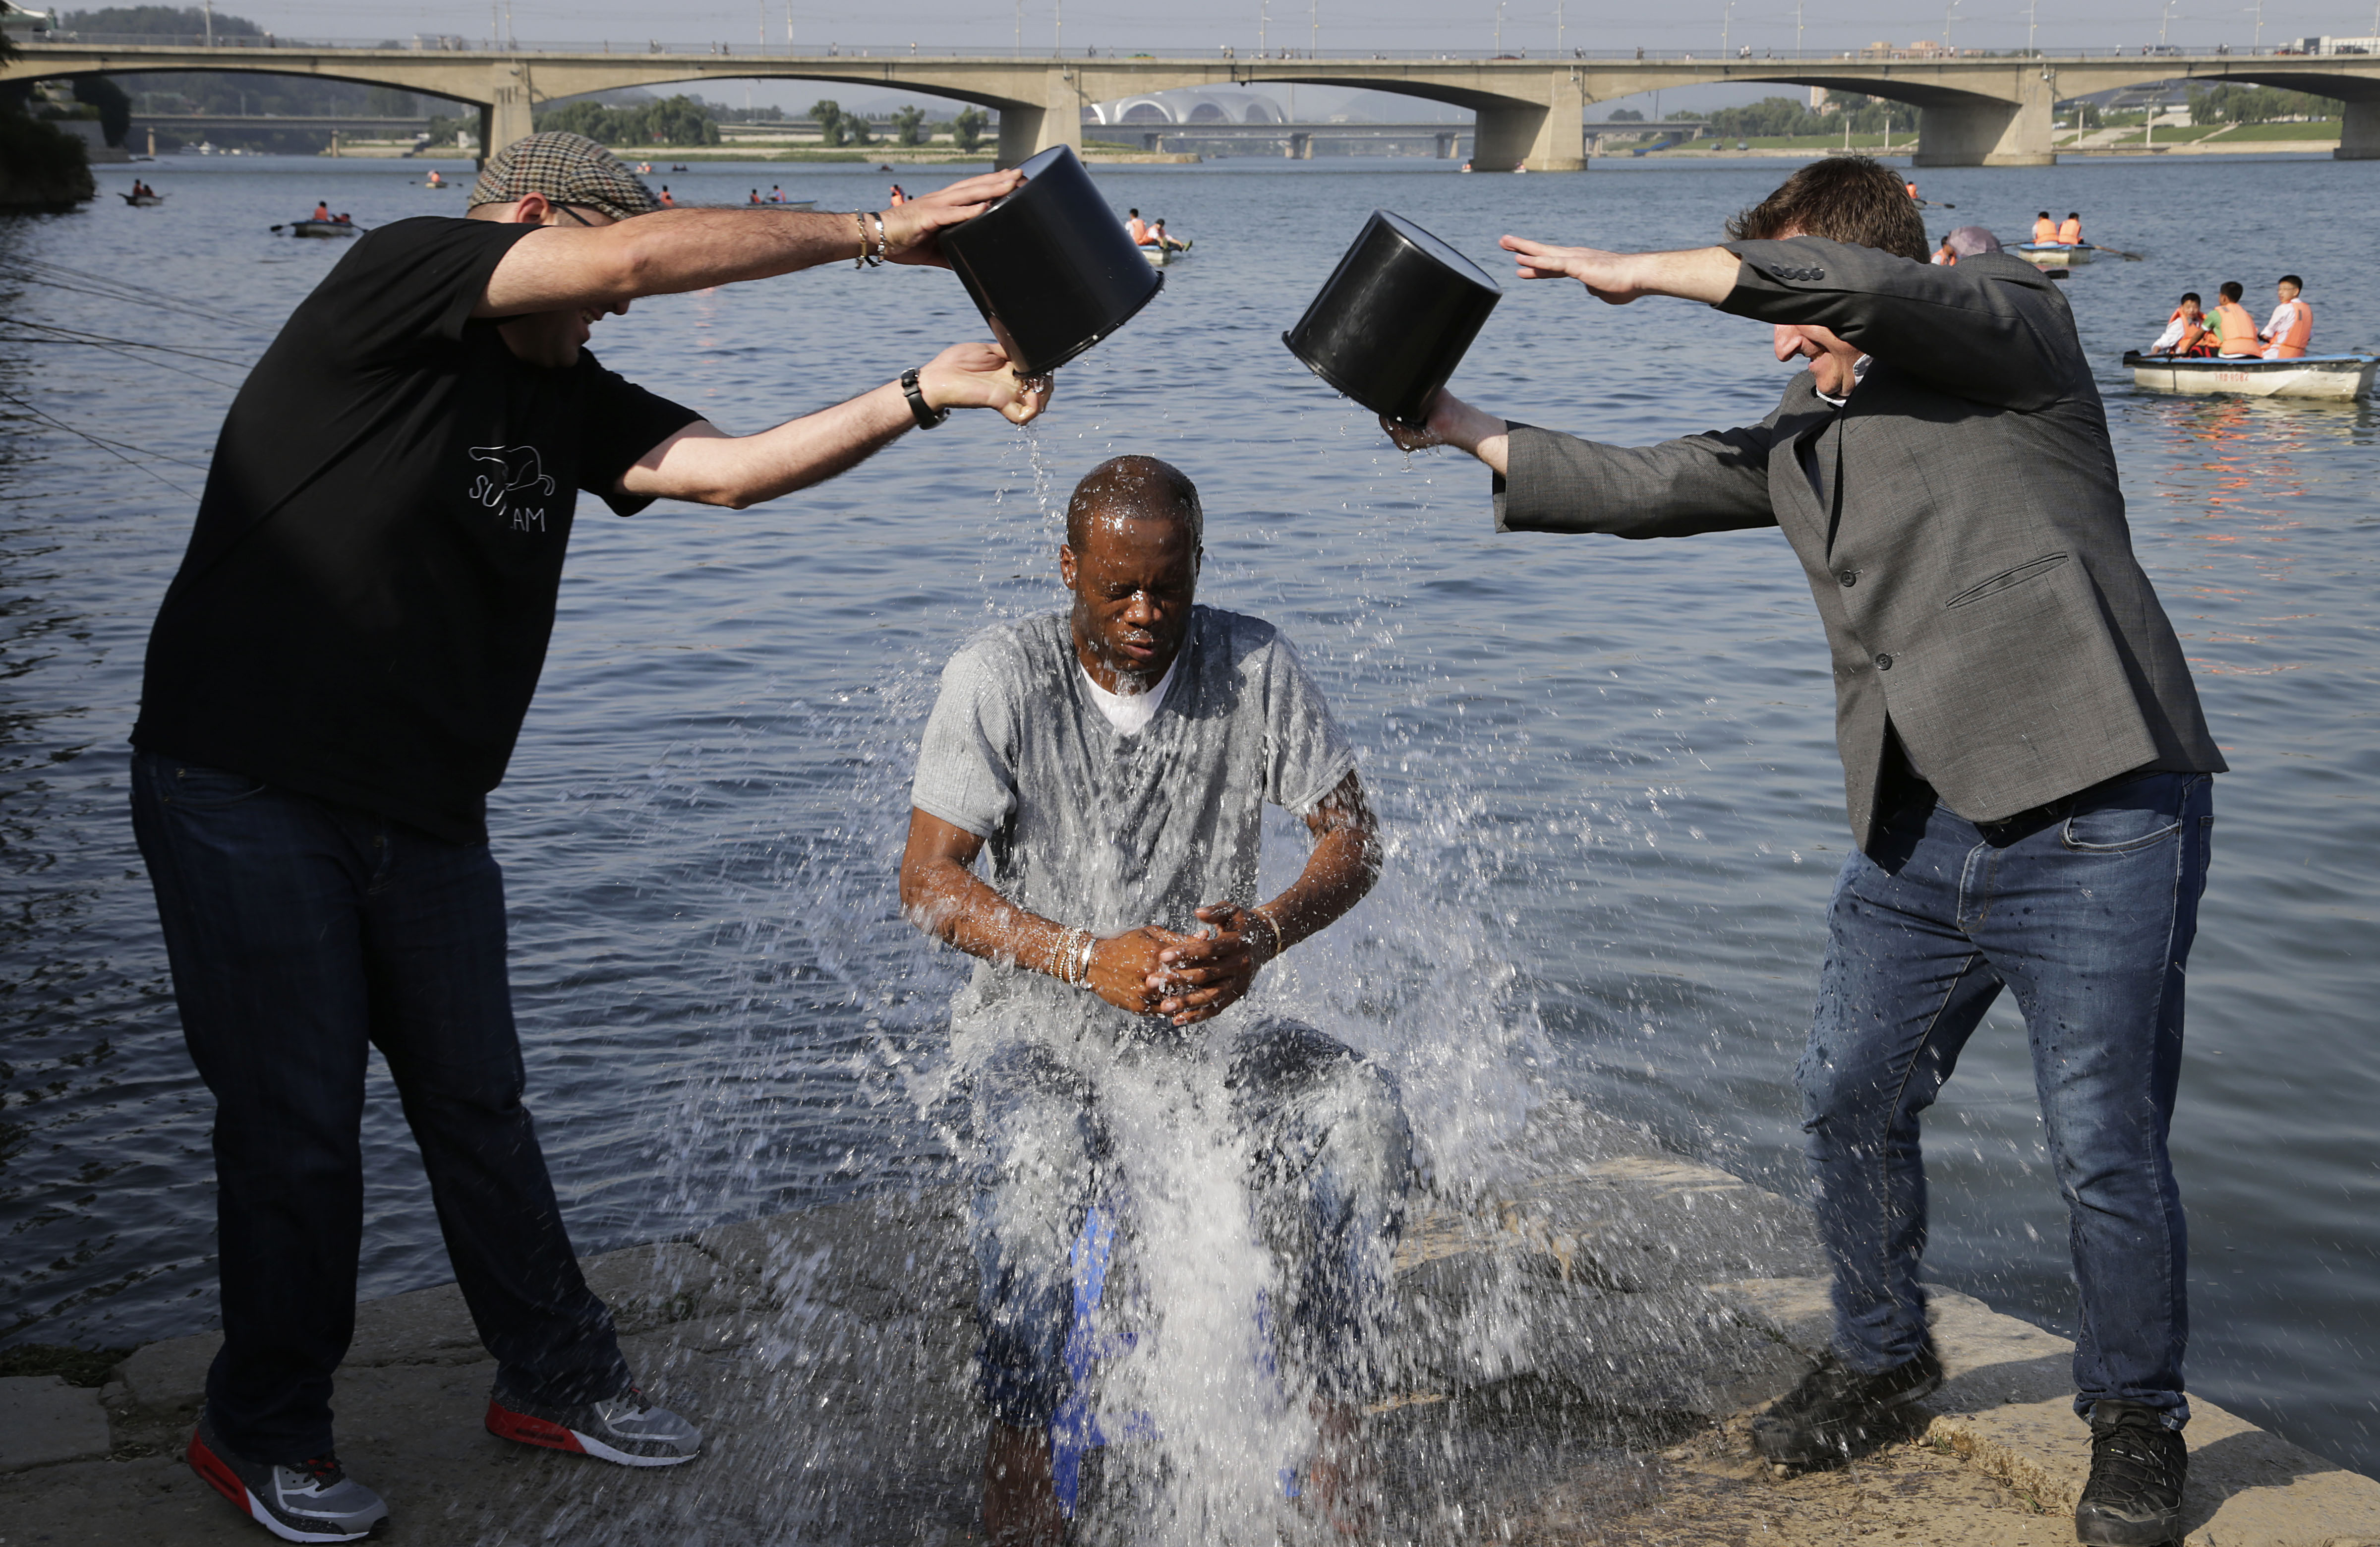 Two-time Grammy award winning rapper and a founding member of the Fugees, Pras Michel, gets doused by his friends for the ALS Ice Bucket Challenge, Sunday, Aug. 31, 2014 in Pyongyang, North Korea.